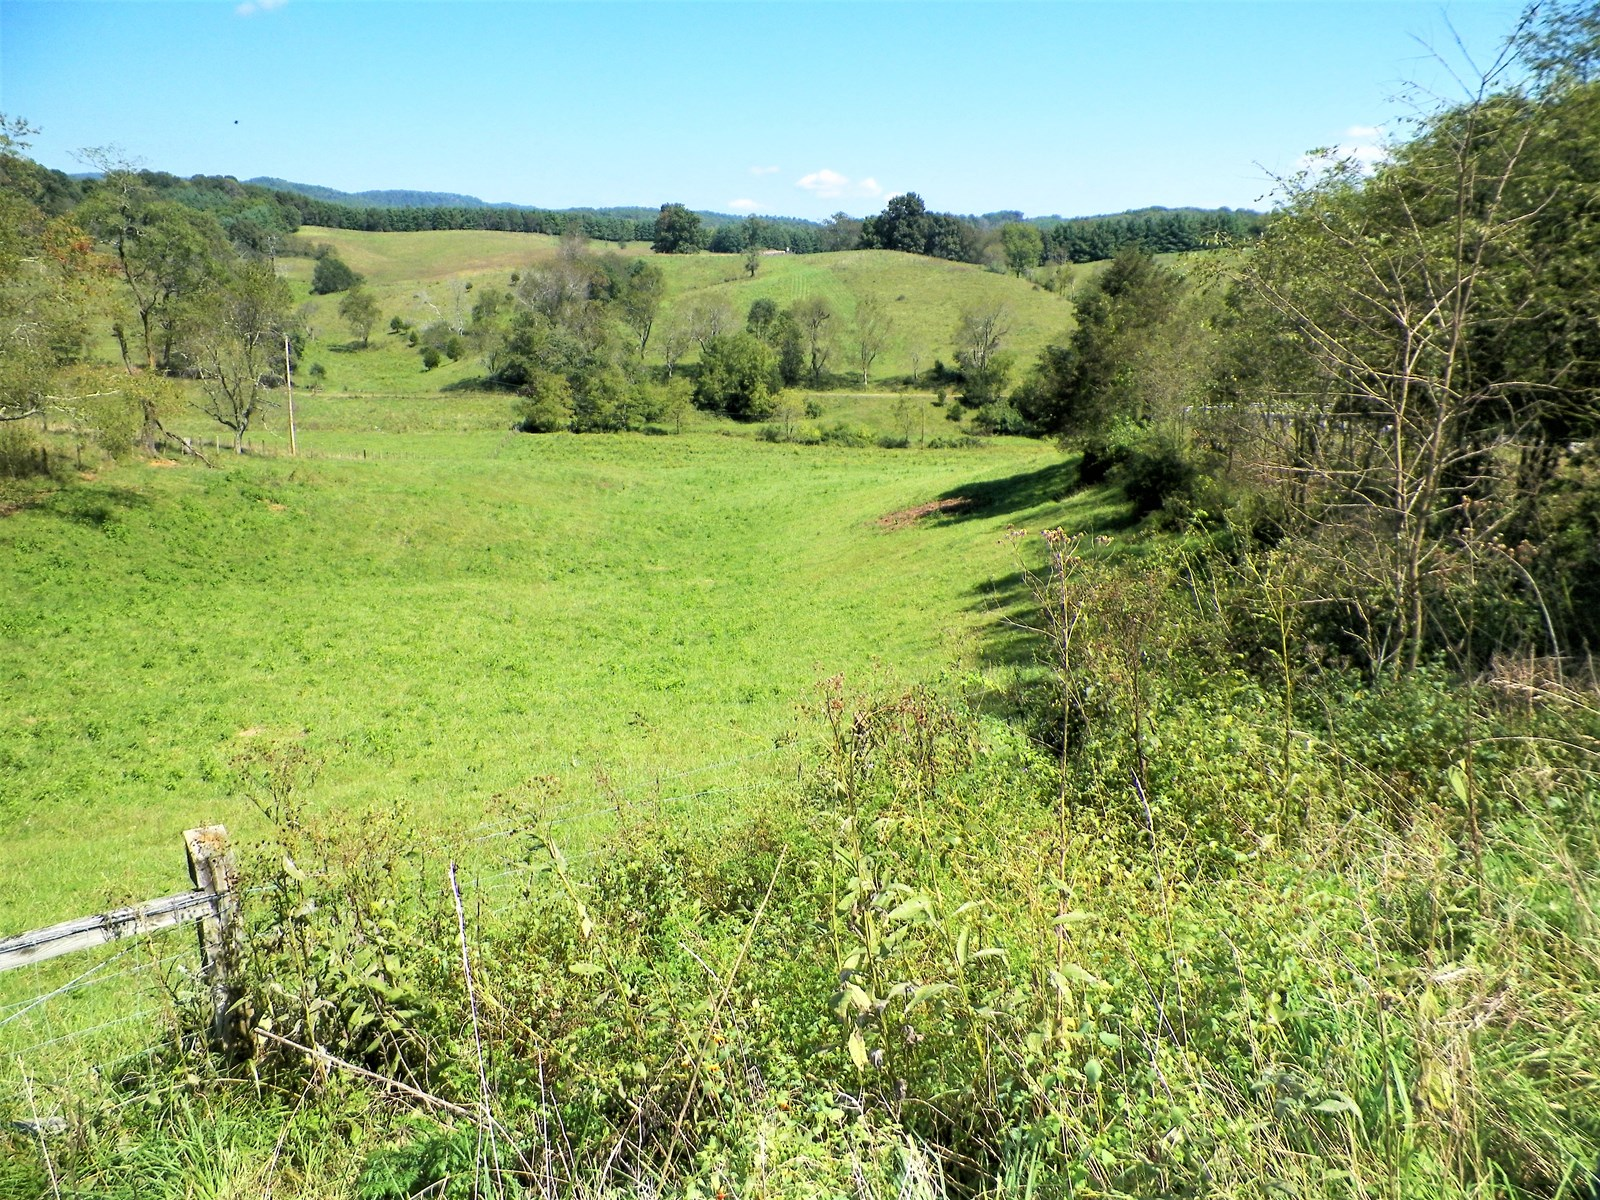 20 + ACRES OF BEAUTIFUL LAND IN THE HEART OF WYTHE CO.